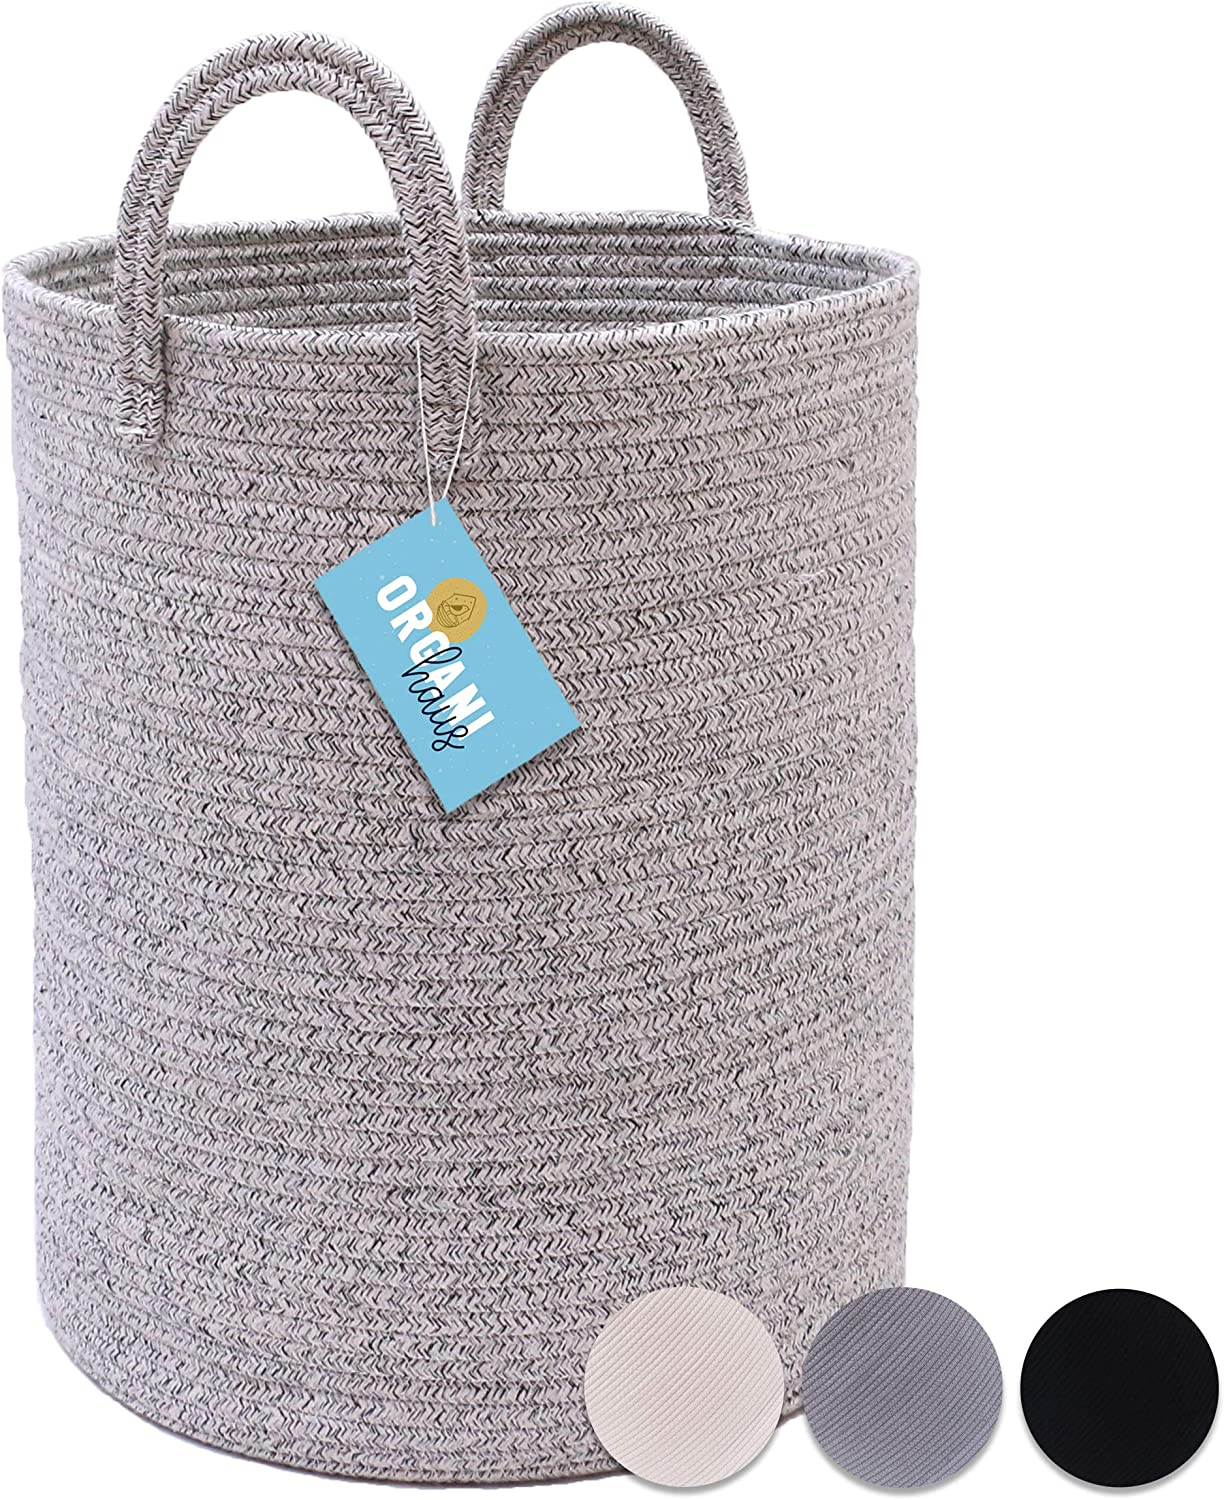 "OrganiHaus Plain Color Cotton Rope Storage Baskets for Laundry and Decorative Blankets (Large (15""x18""), Mixed Grey)"